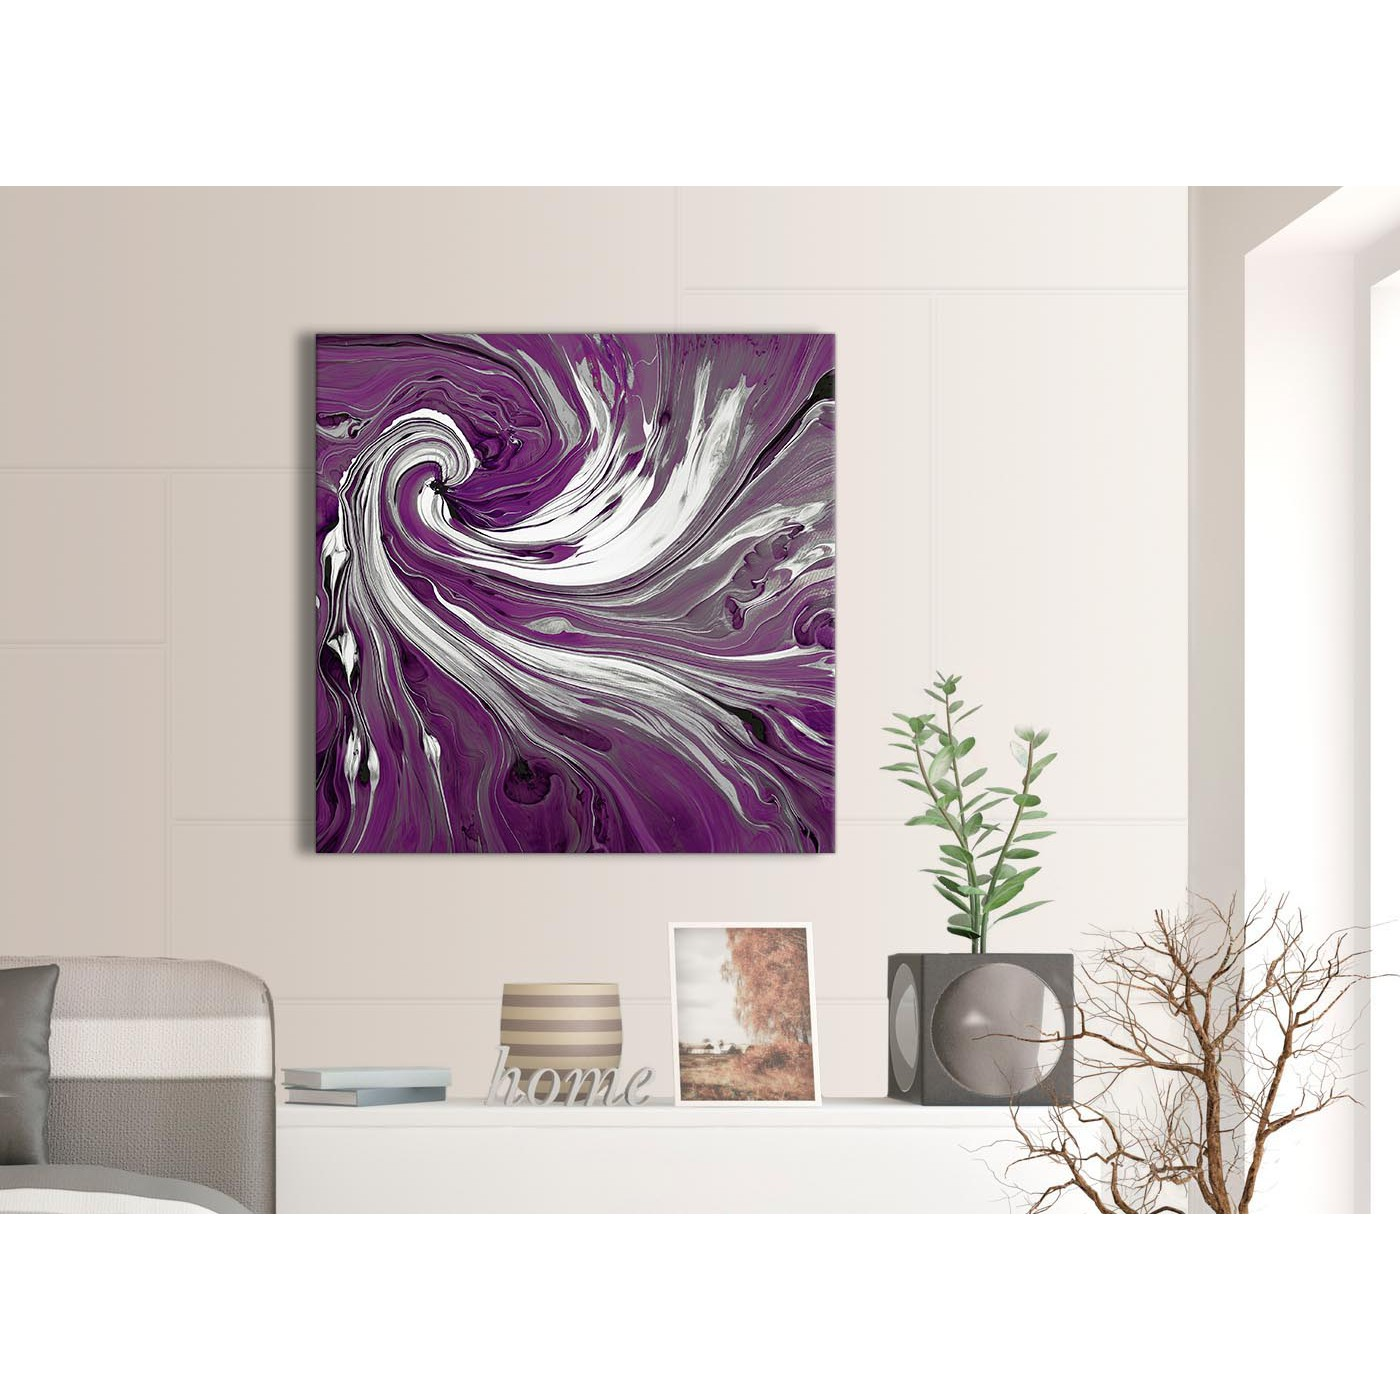 purple white swirls modern abstract canvas wall art 79cm square 1s353l. Black Bedroom Furniture Sets. Home Design Ideas